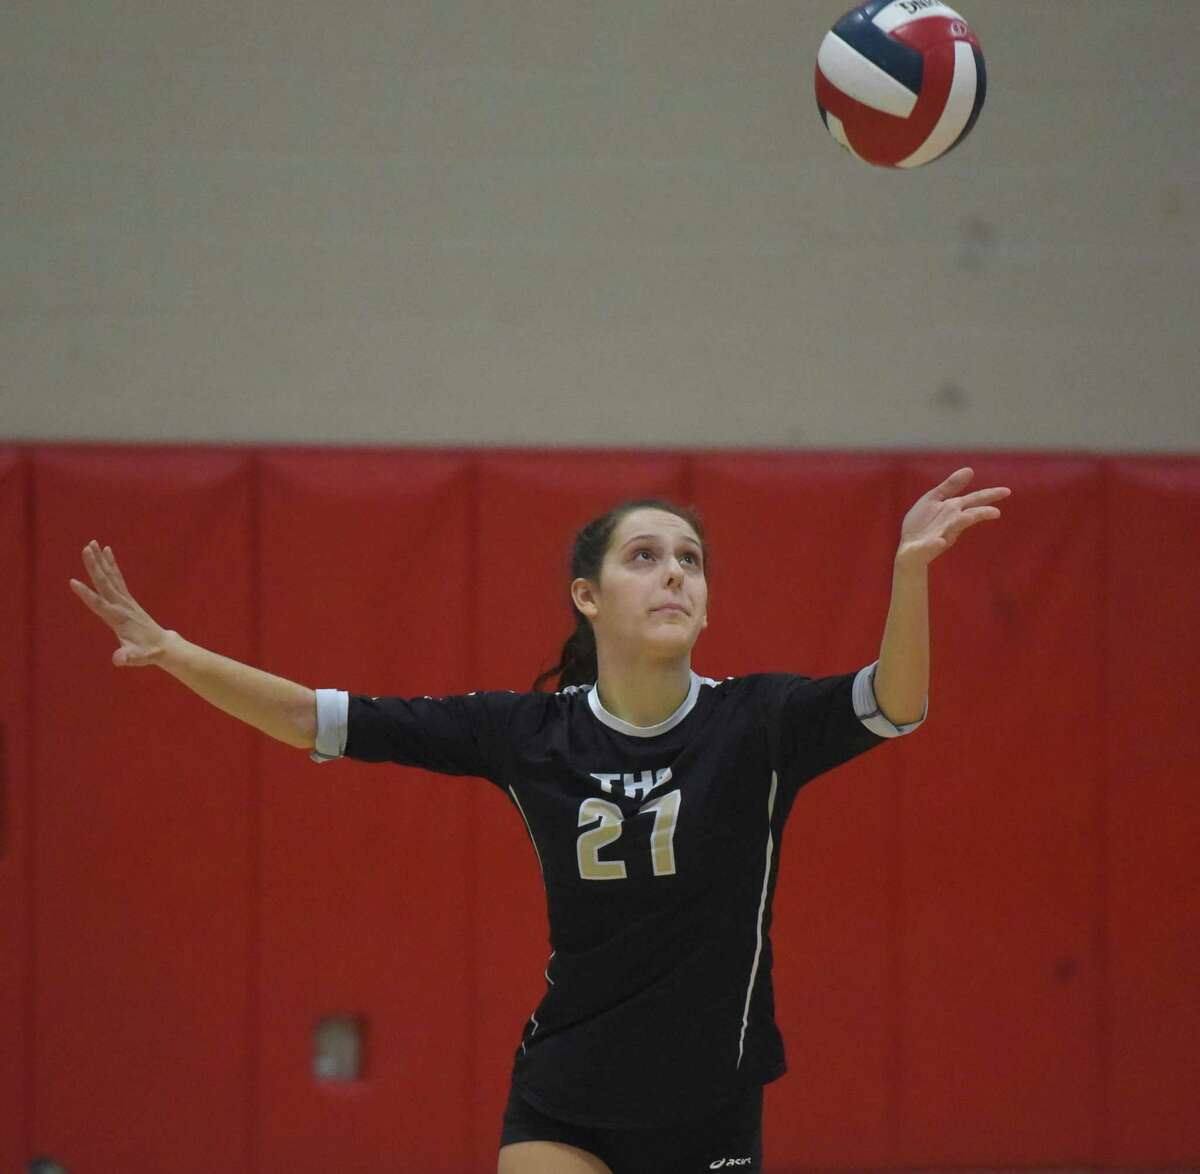 Trumbull's Ali Castro (27) serves during a girls volleyball match in New Canaan on Thursday, Oct. 3, 2019.